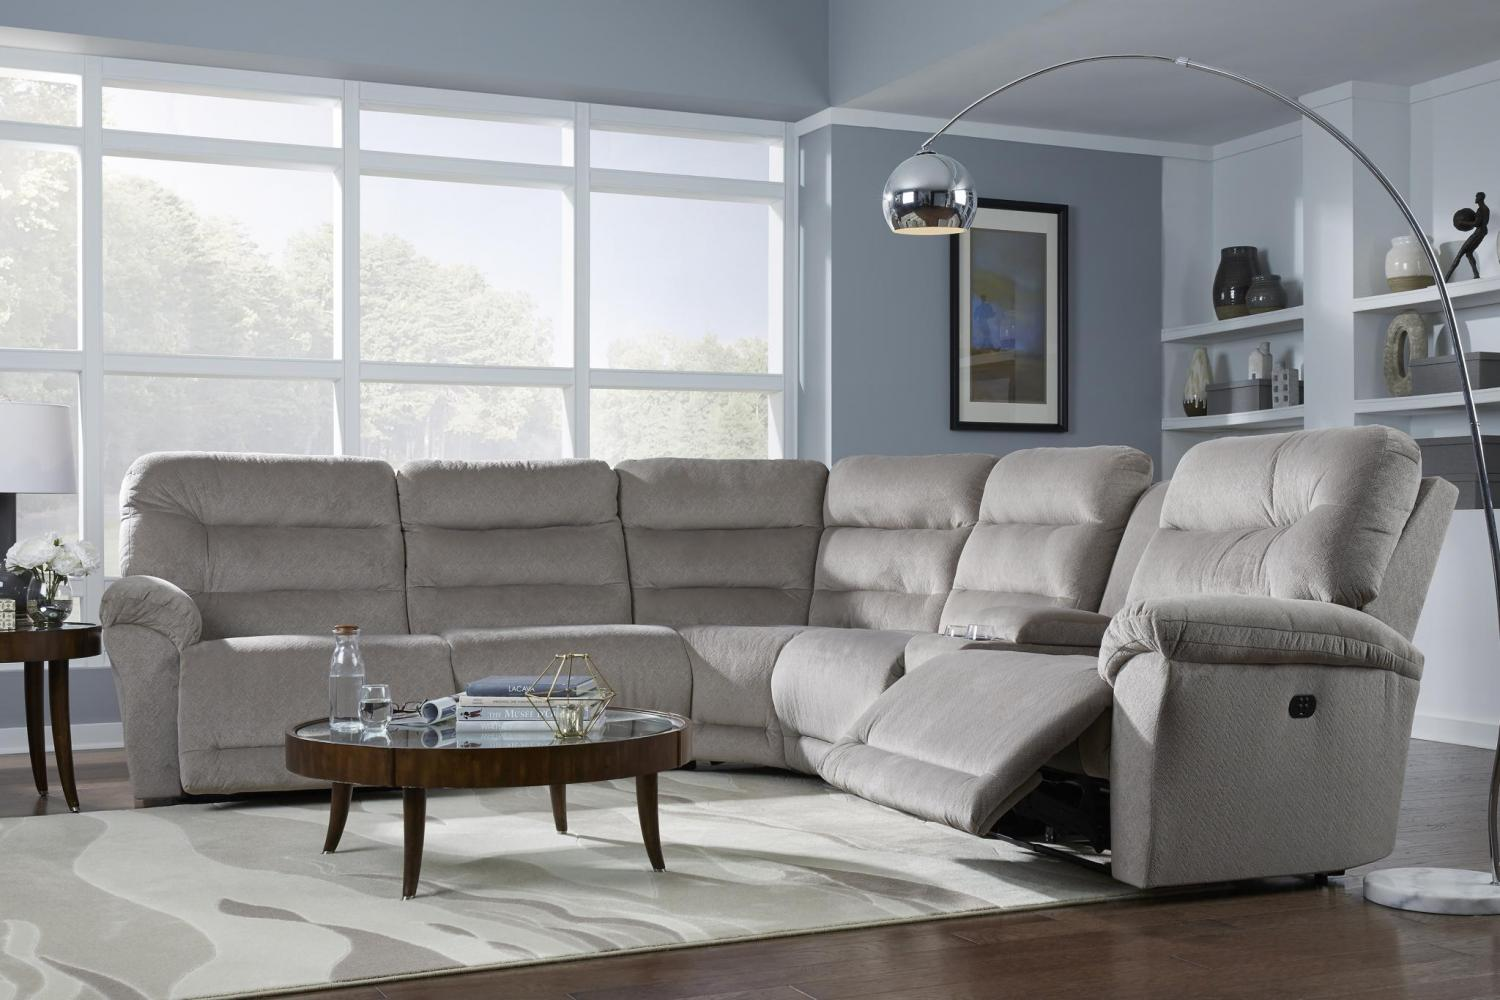 living room sofa with gray blue walls to illustrate brighten up your living room